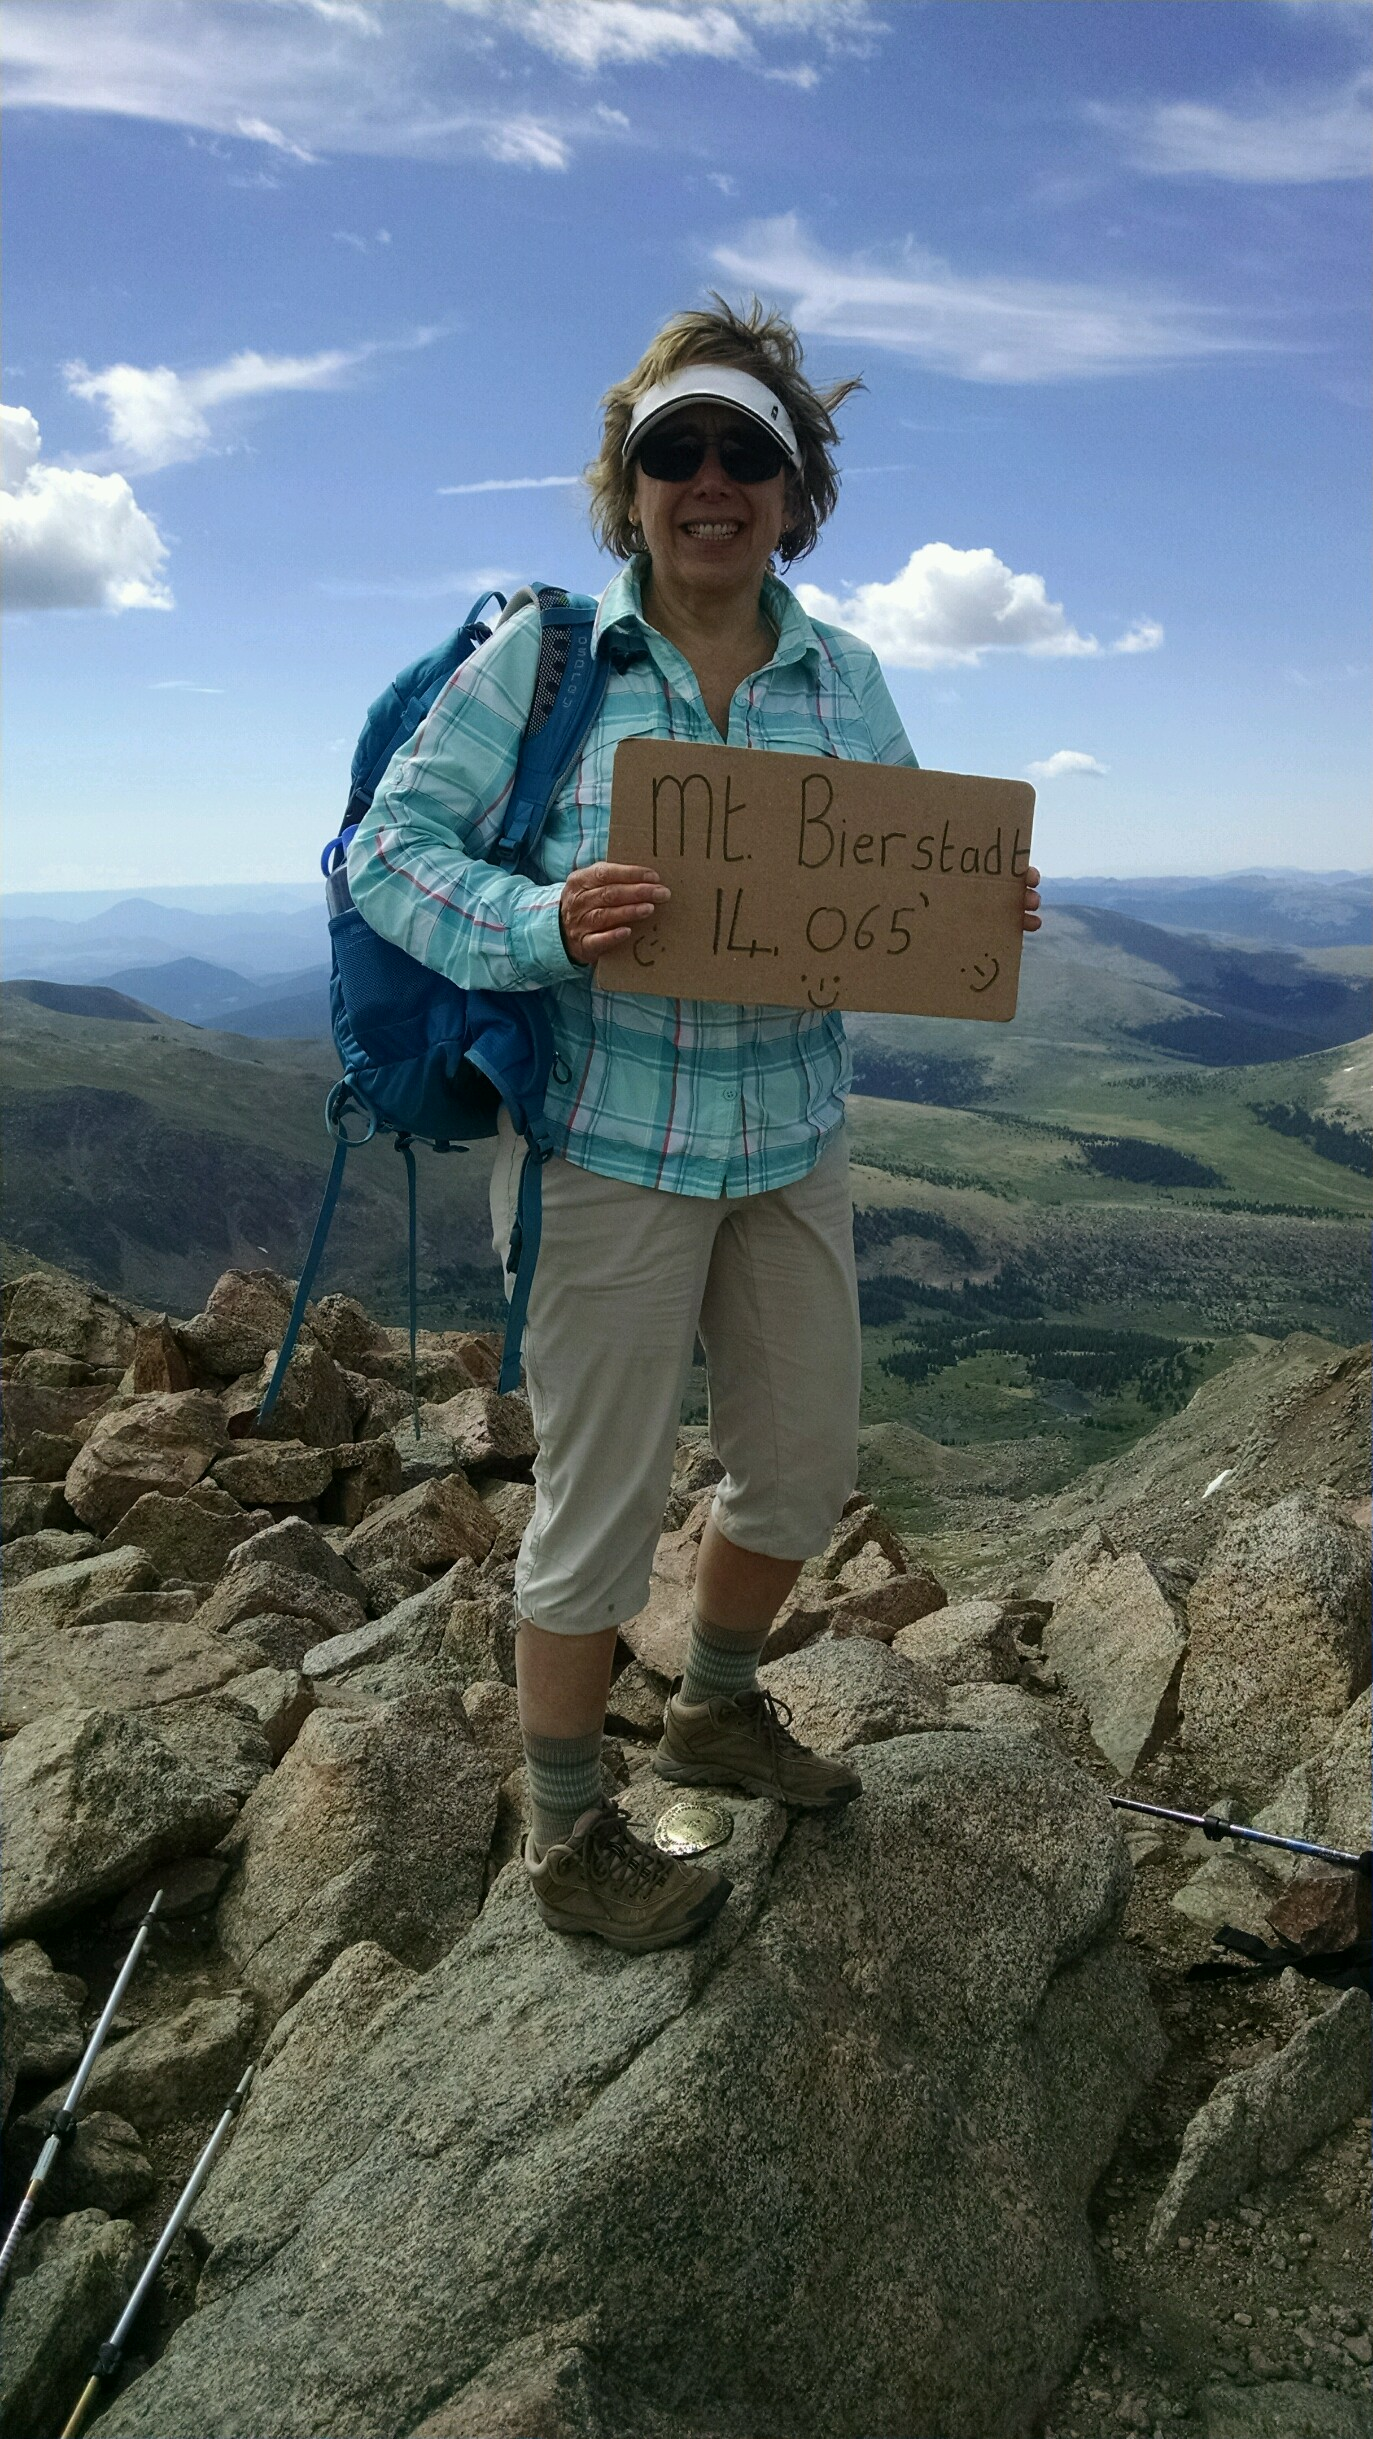 Barb Halverson (1981) on Mt. Bierstadt